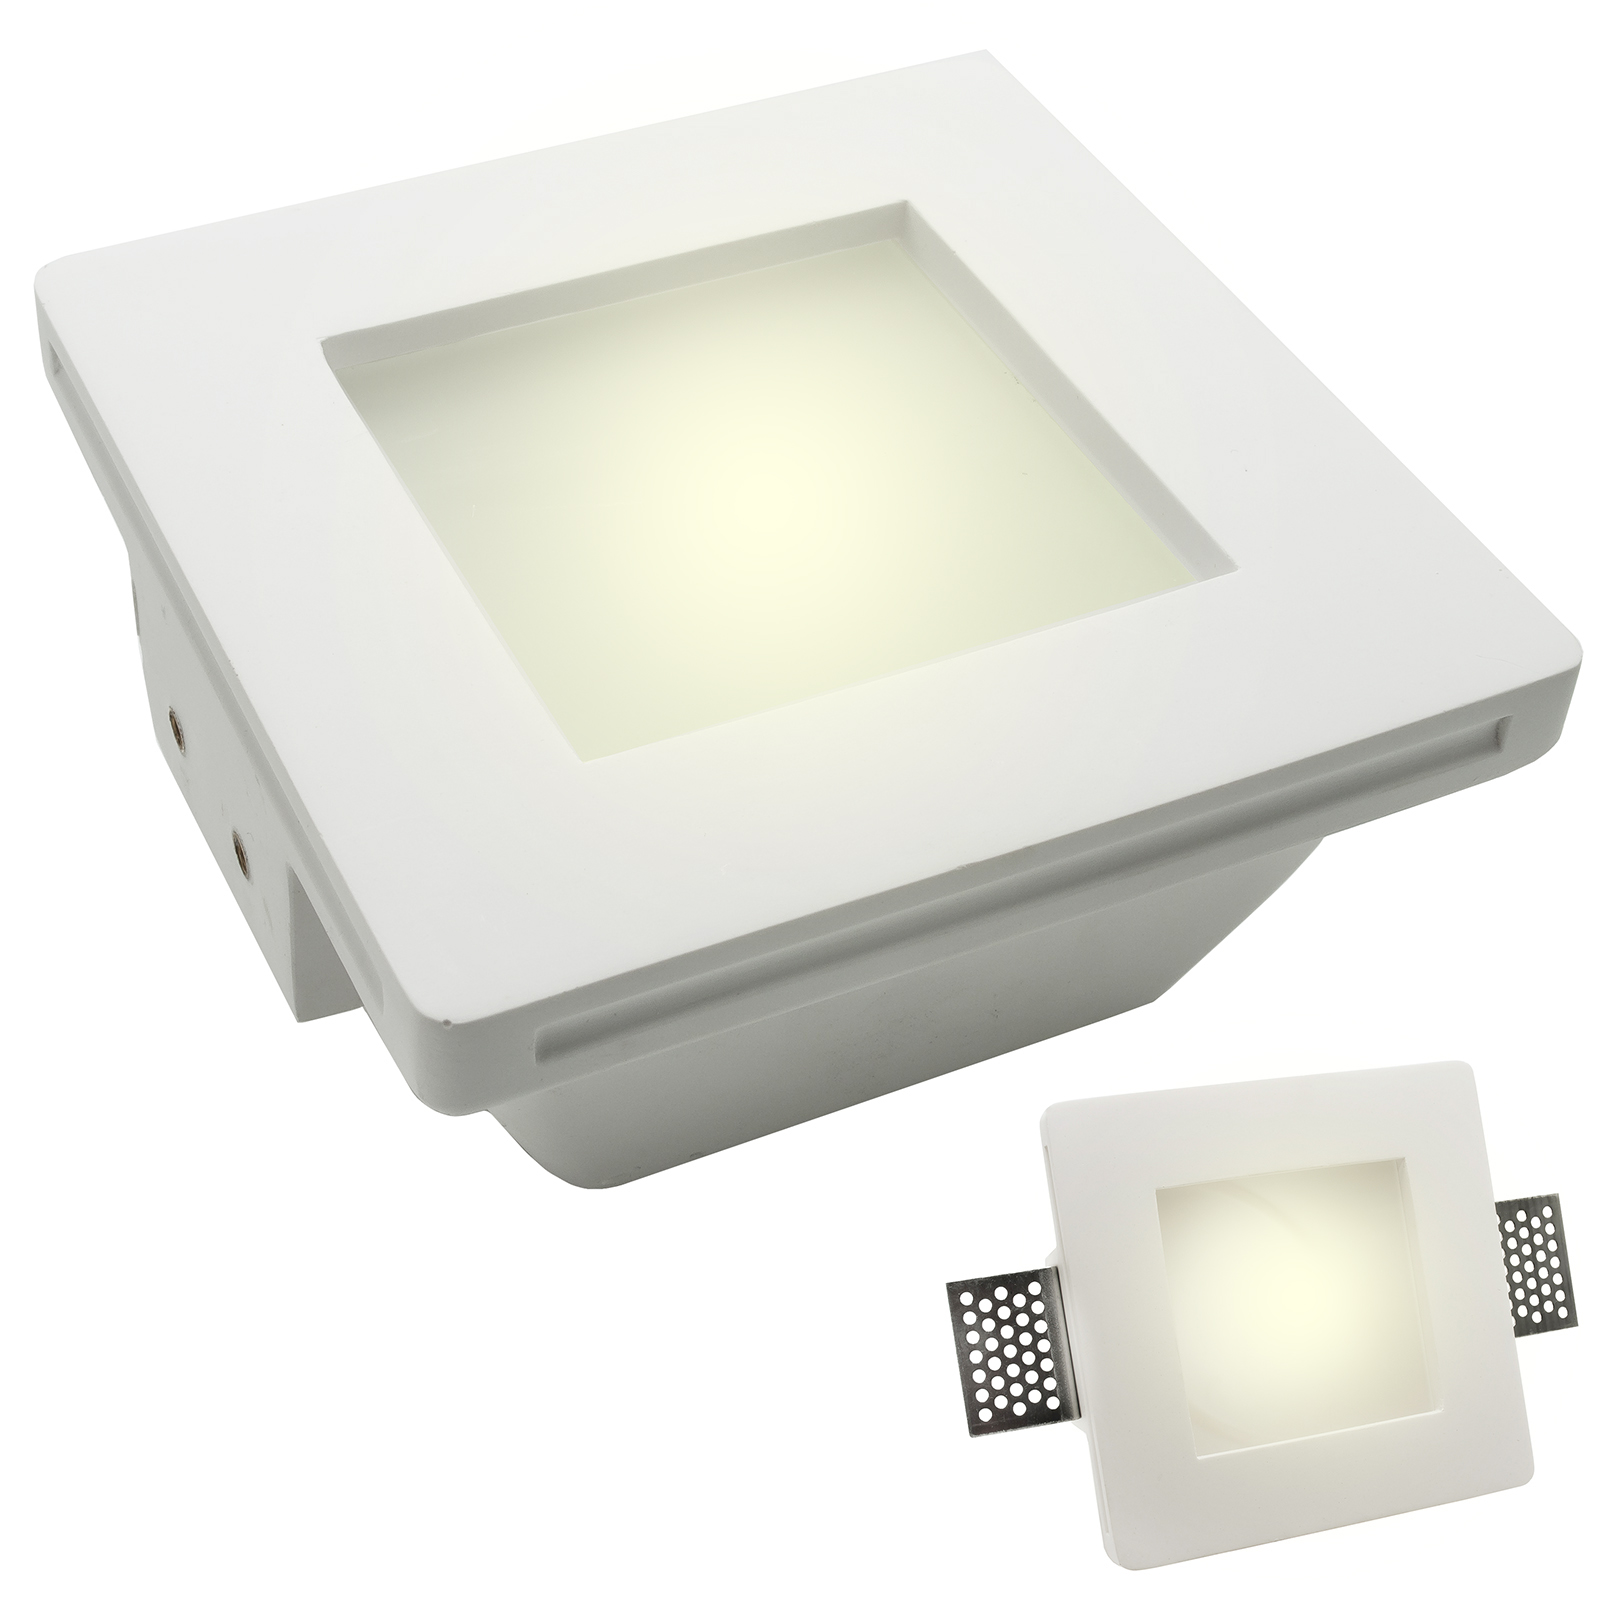 Spotlight plaster disappearance led lamp 8W recessed square frosted glass gu10